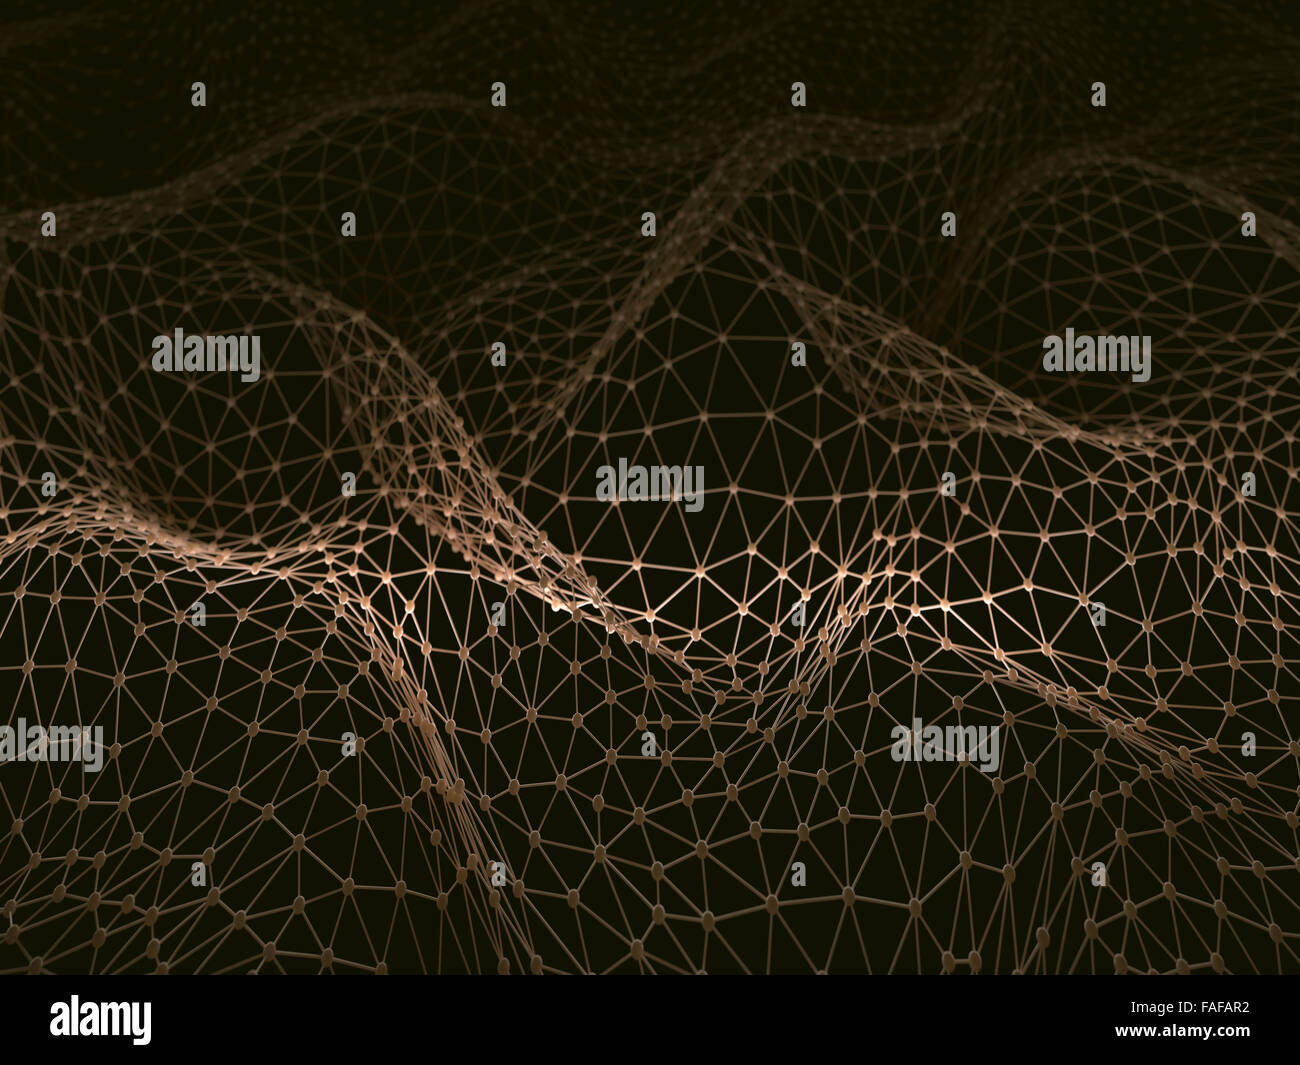 Abstract image representing the connections of communication and information technology. Image with depth of field. - Stock Image